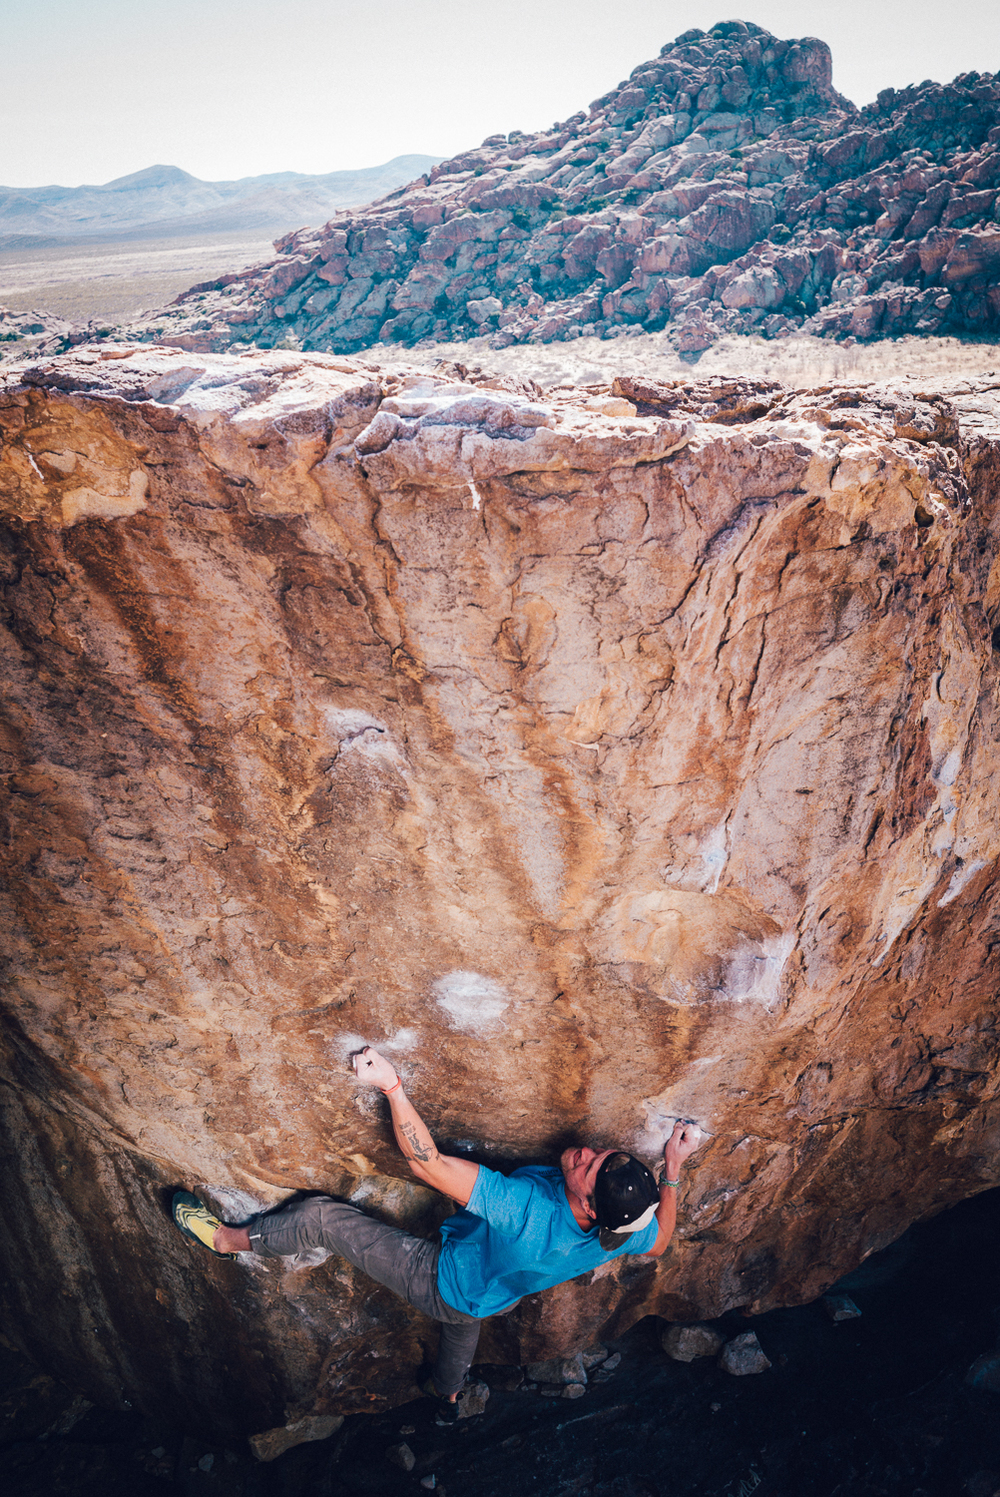 Brendan H., give Baby Face (v7) boulder a run. Michael Lim Photography 2015 ©